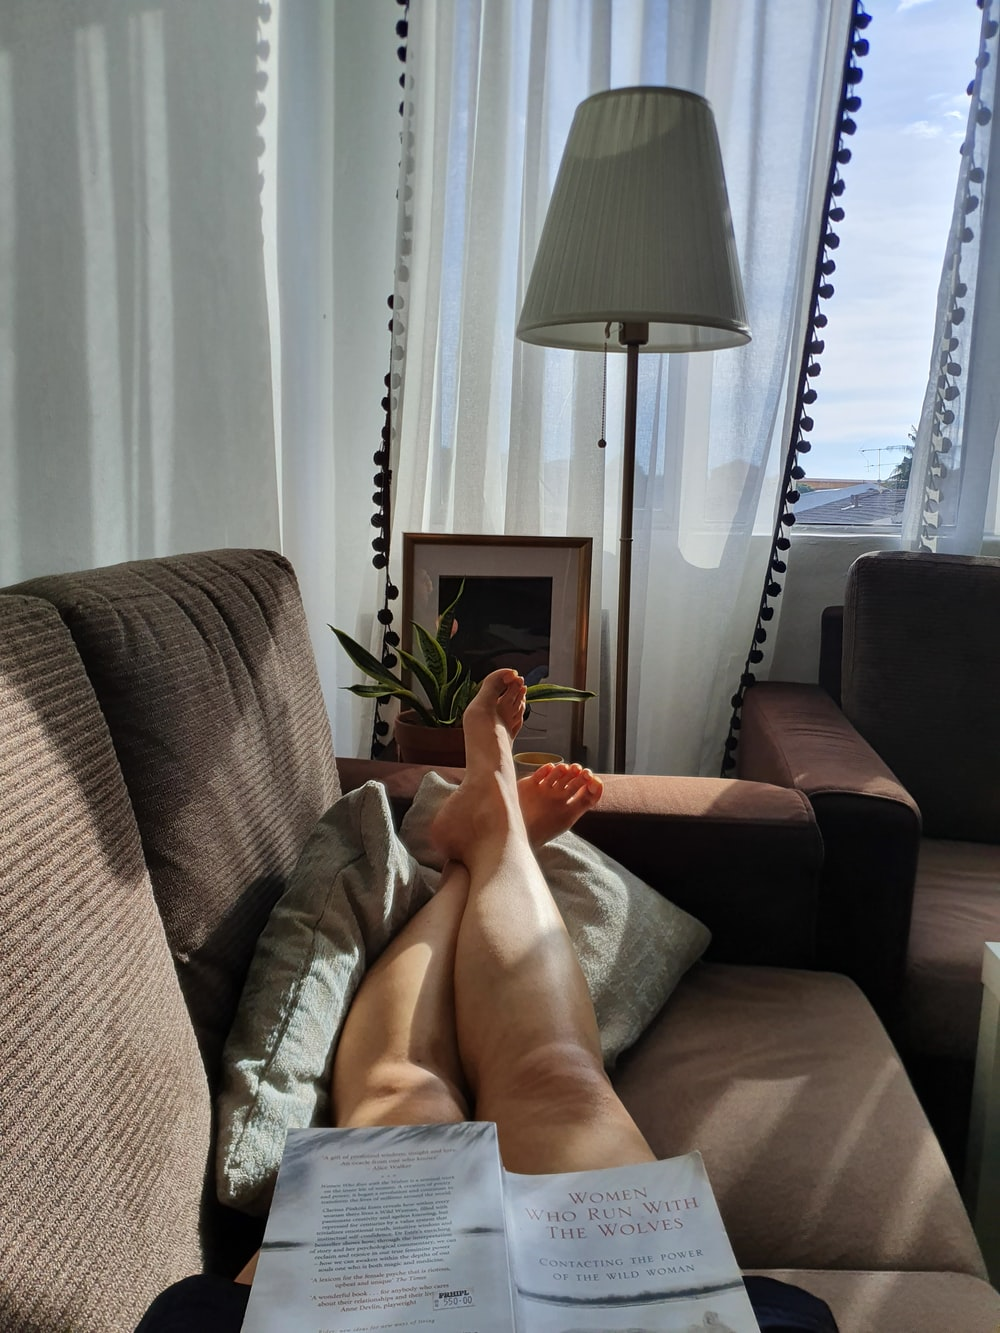 person lying on sofa near table lamp